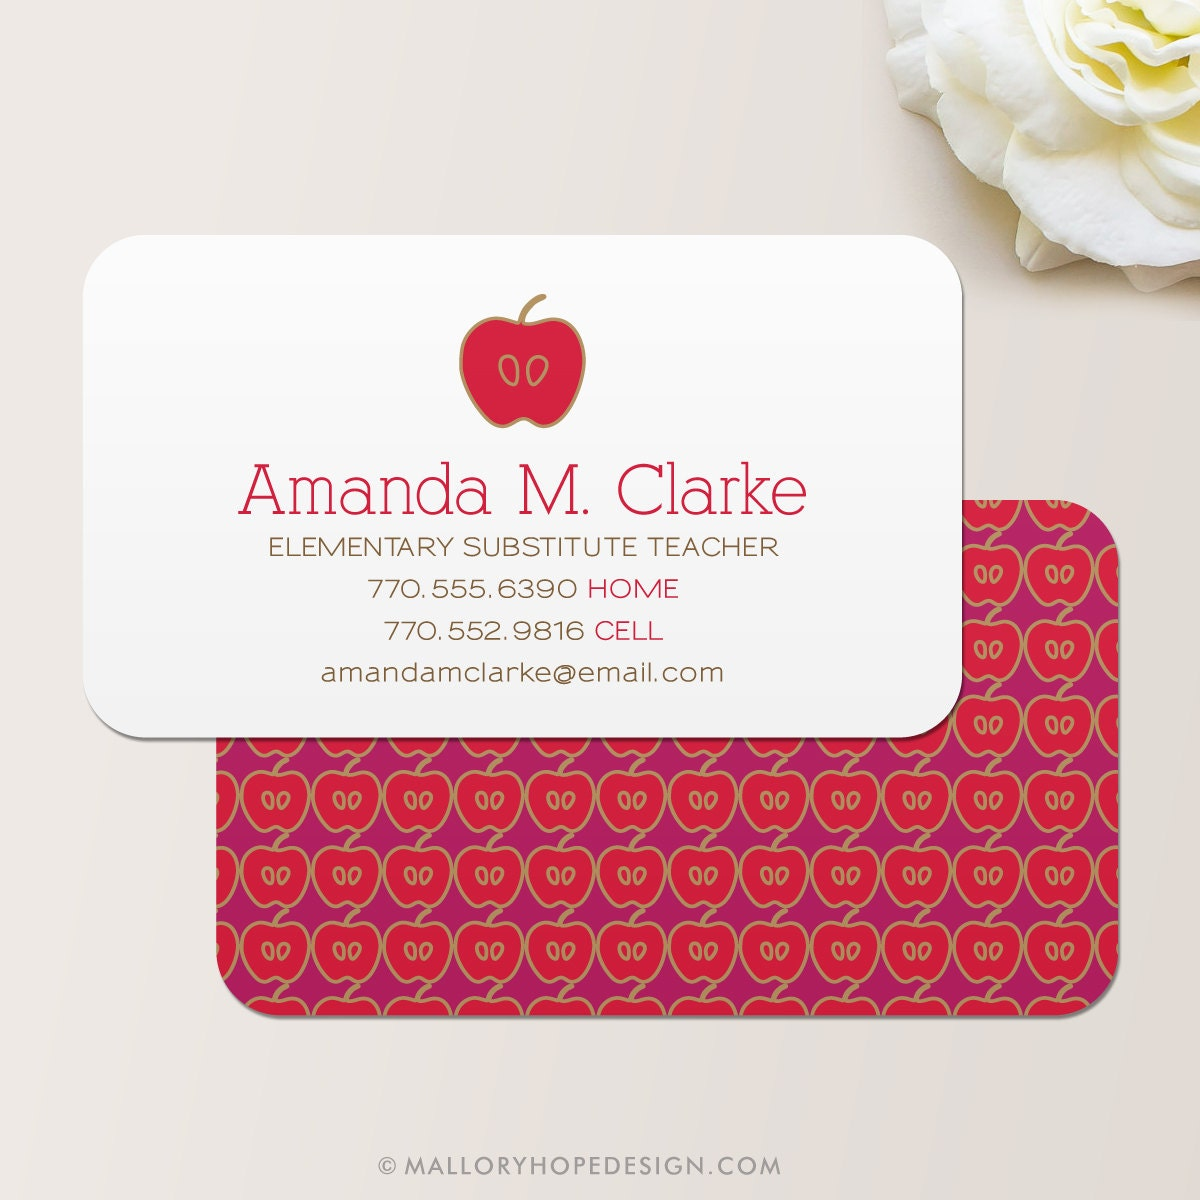 Teacher business card calling card mommy card contact zoom magicingreecefo Gallery